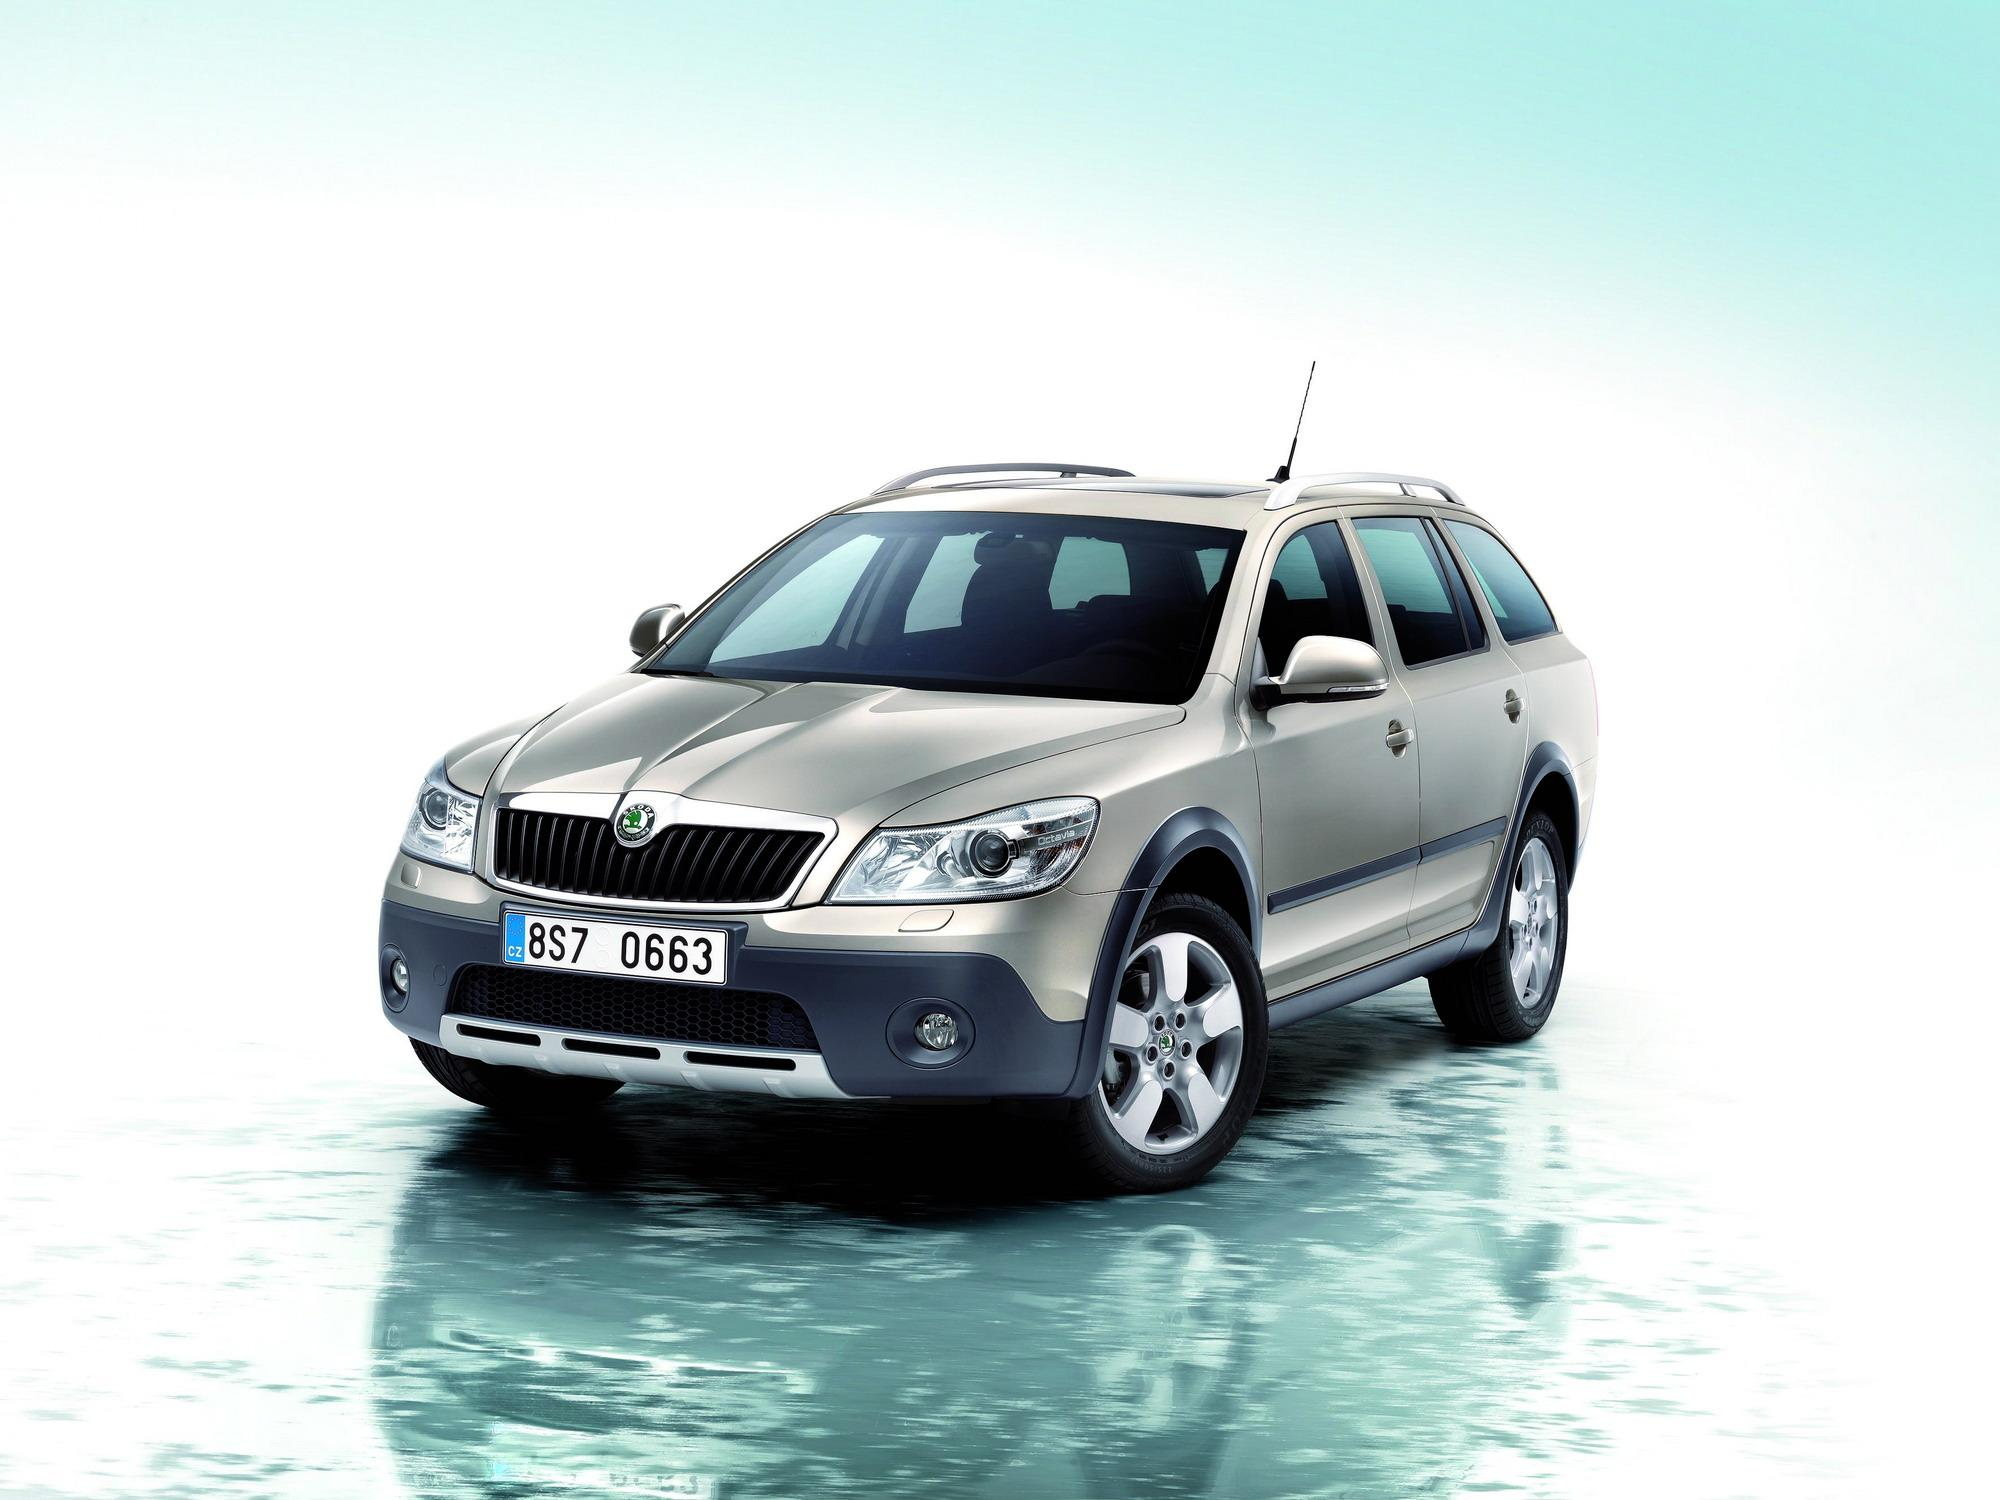 2009 skoda octavia scout review top speed. Black Bedroom Furniture Sets. Home Design Ideas